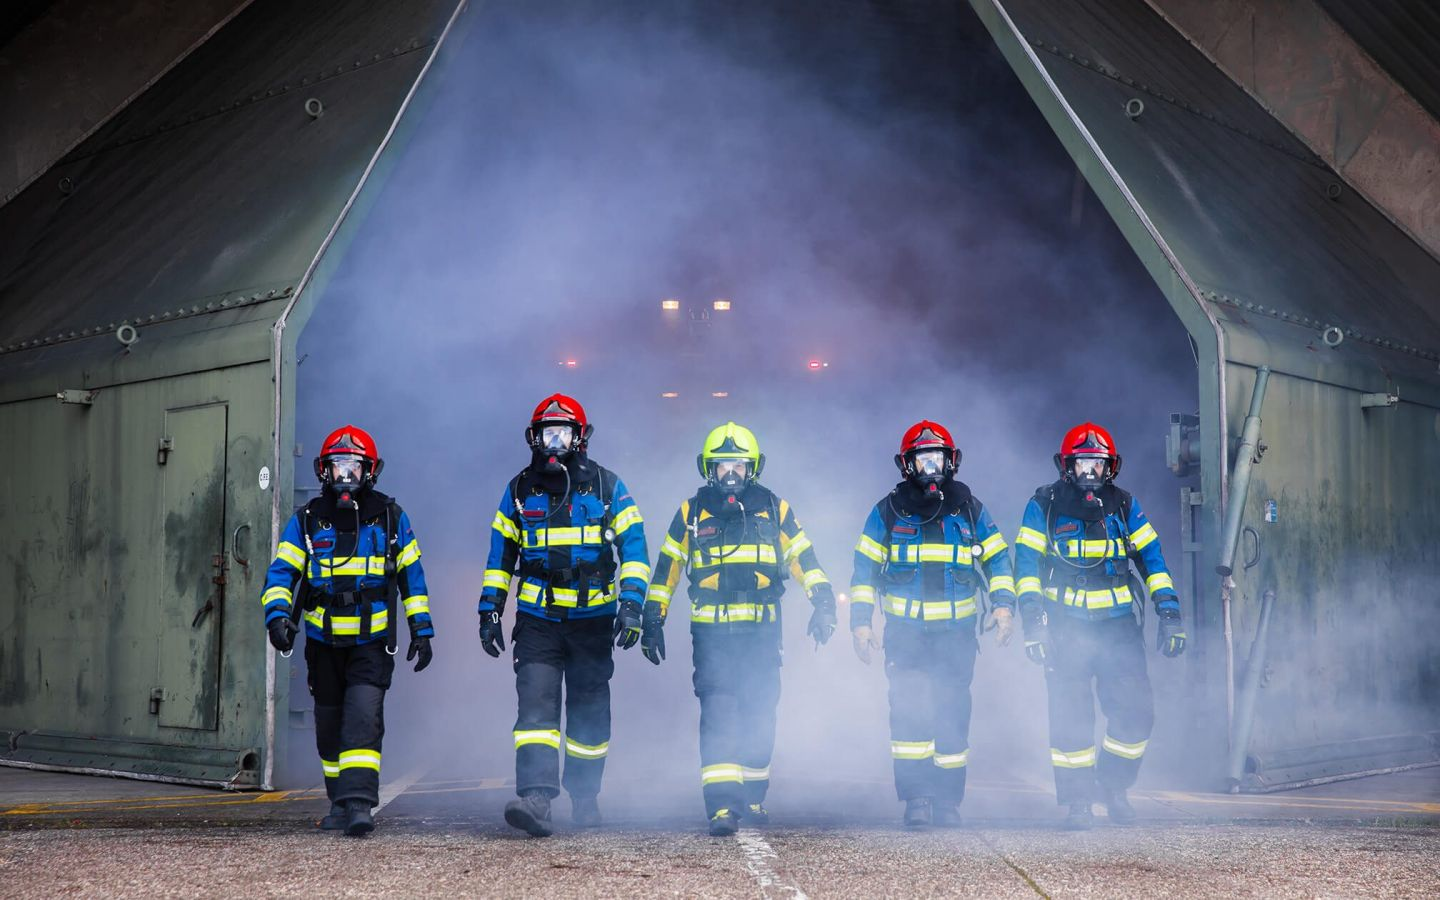 Brandwacht Huren BV - Your Fire Safety Professionals